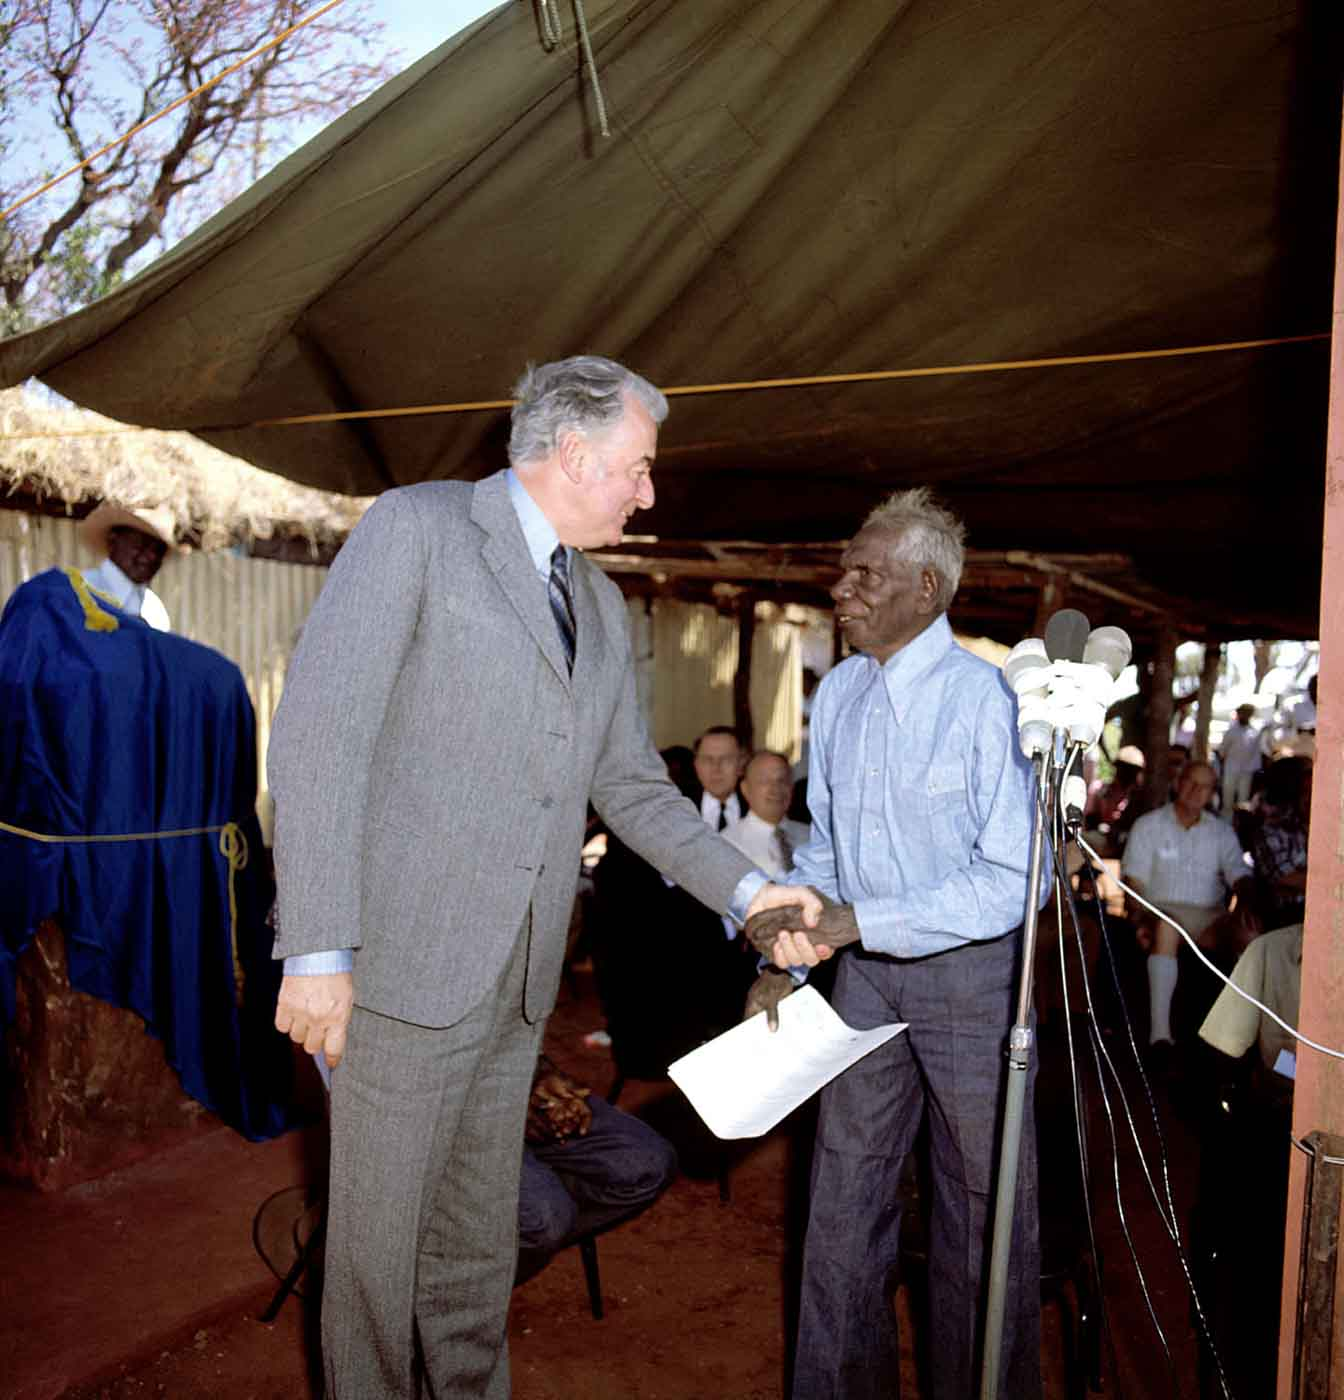 Two men are standing under a canvas roof in outback terrain. One man is Gough Whitlam who is shaking Vincent Lingiari's hand.